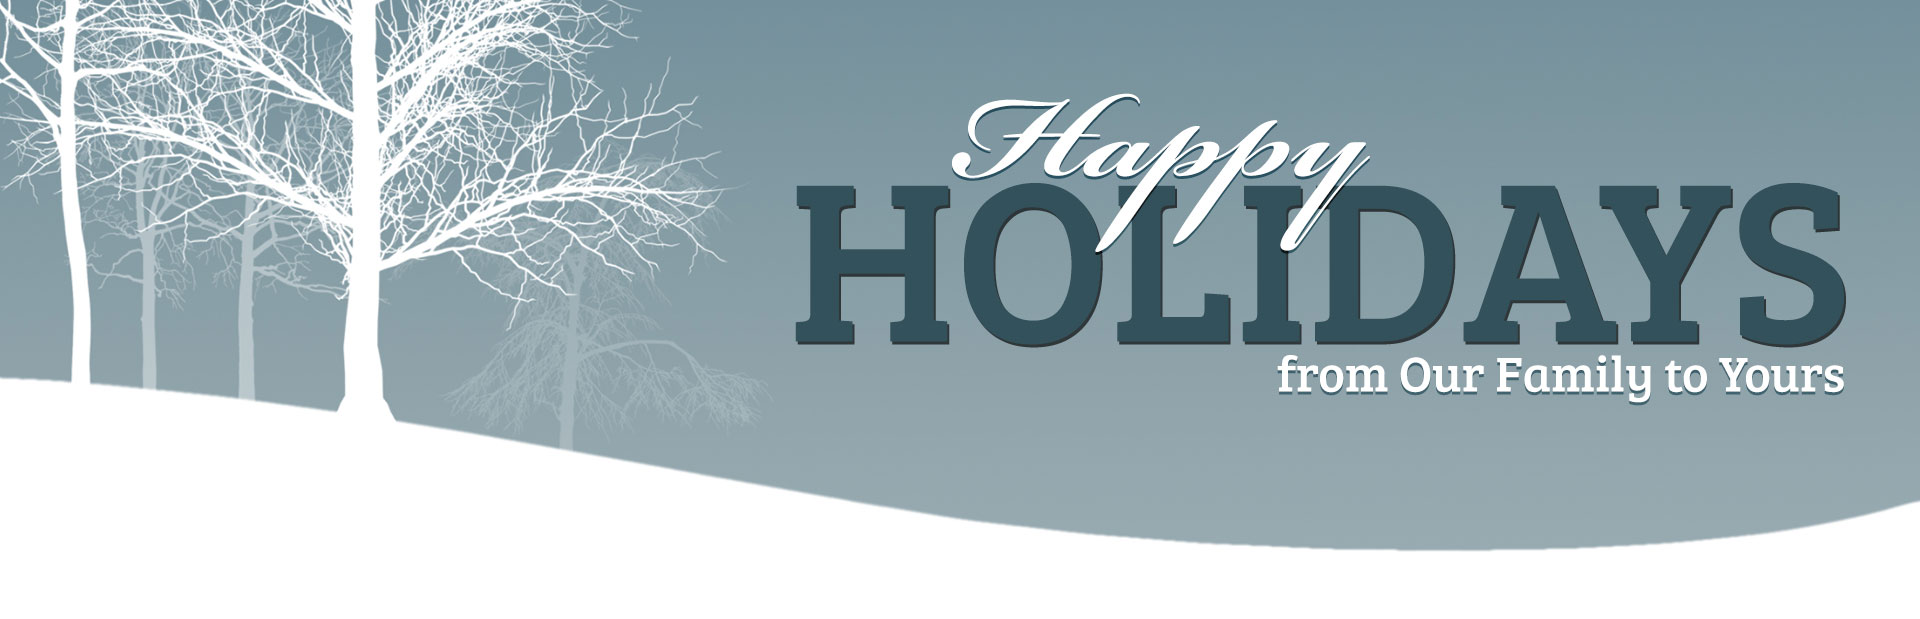 Happy holidays from our family to yours.